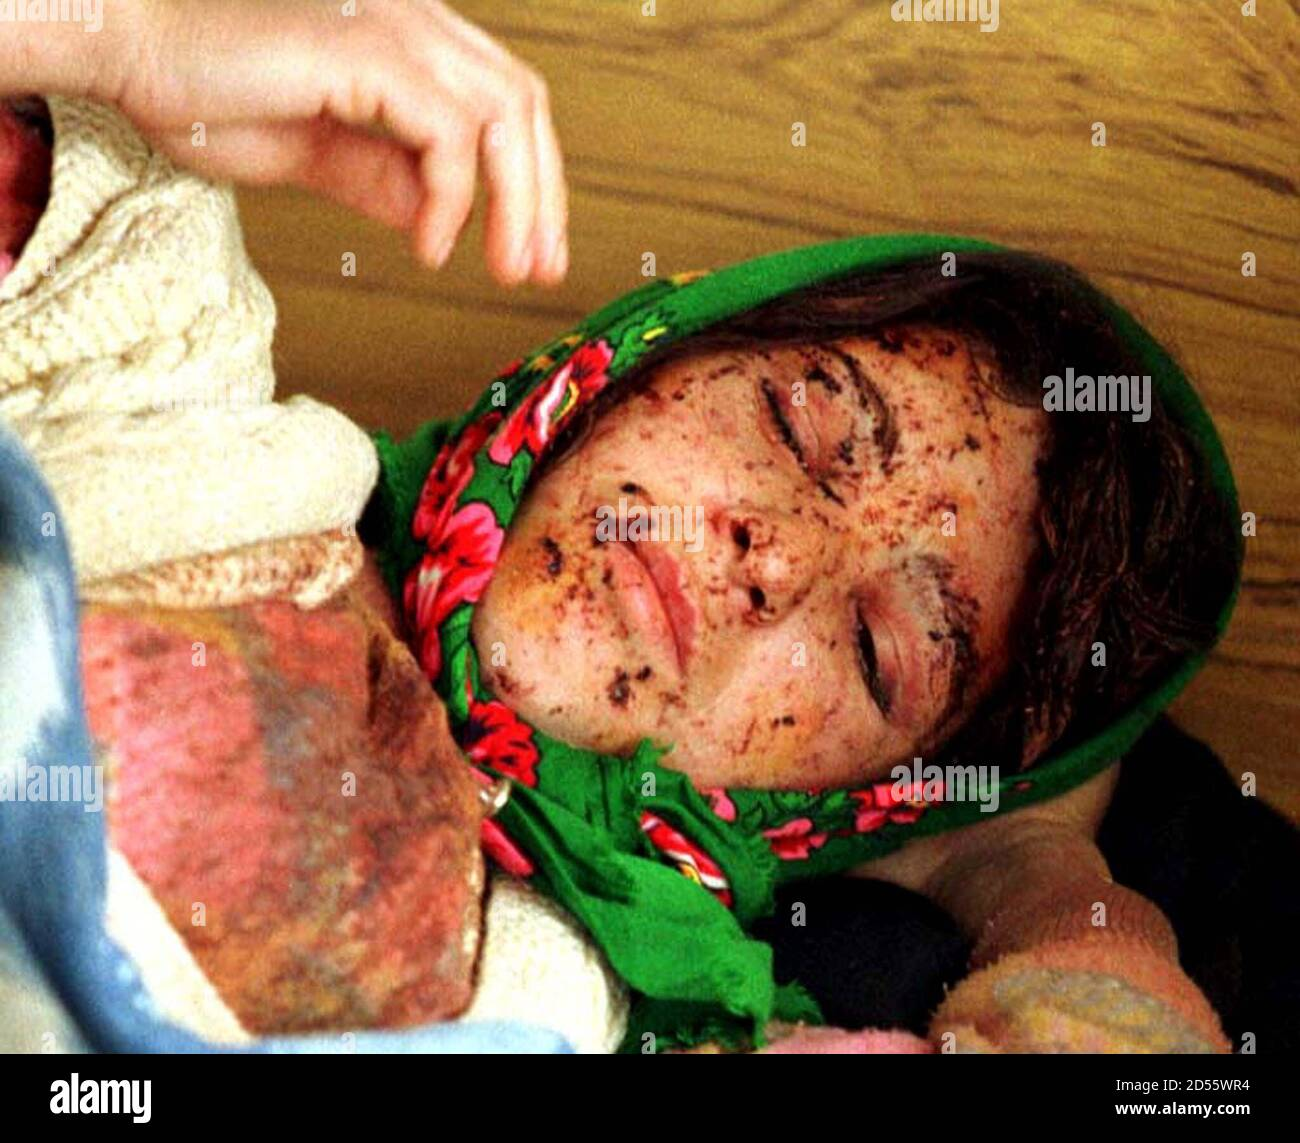 Besa Guci, an ethnic Albanian refugee from the village of Damnjane in the Serbian province of Kosovo, rests in Kukes hospital in northern Albania March 31. Guci says she was injured in the face by a Serbian grenade. Stock Photo